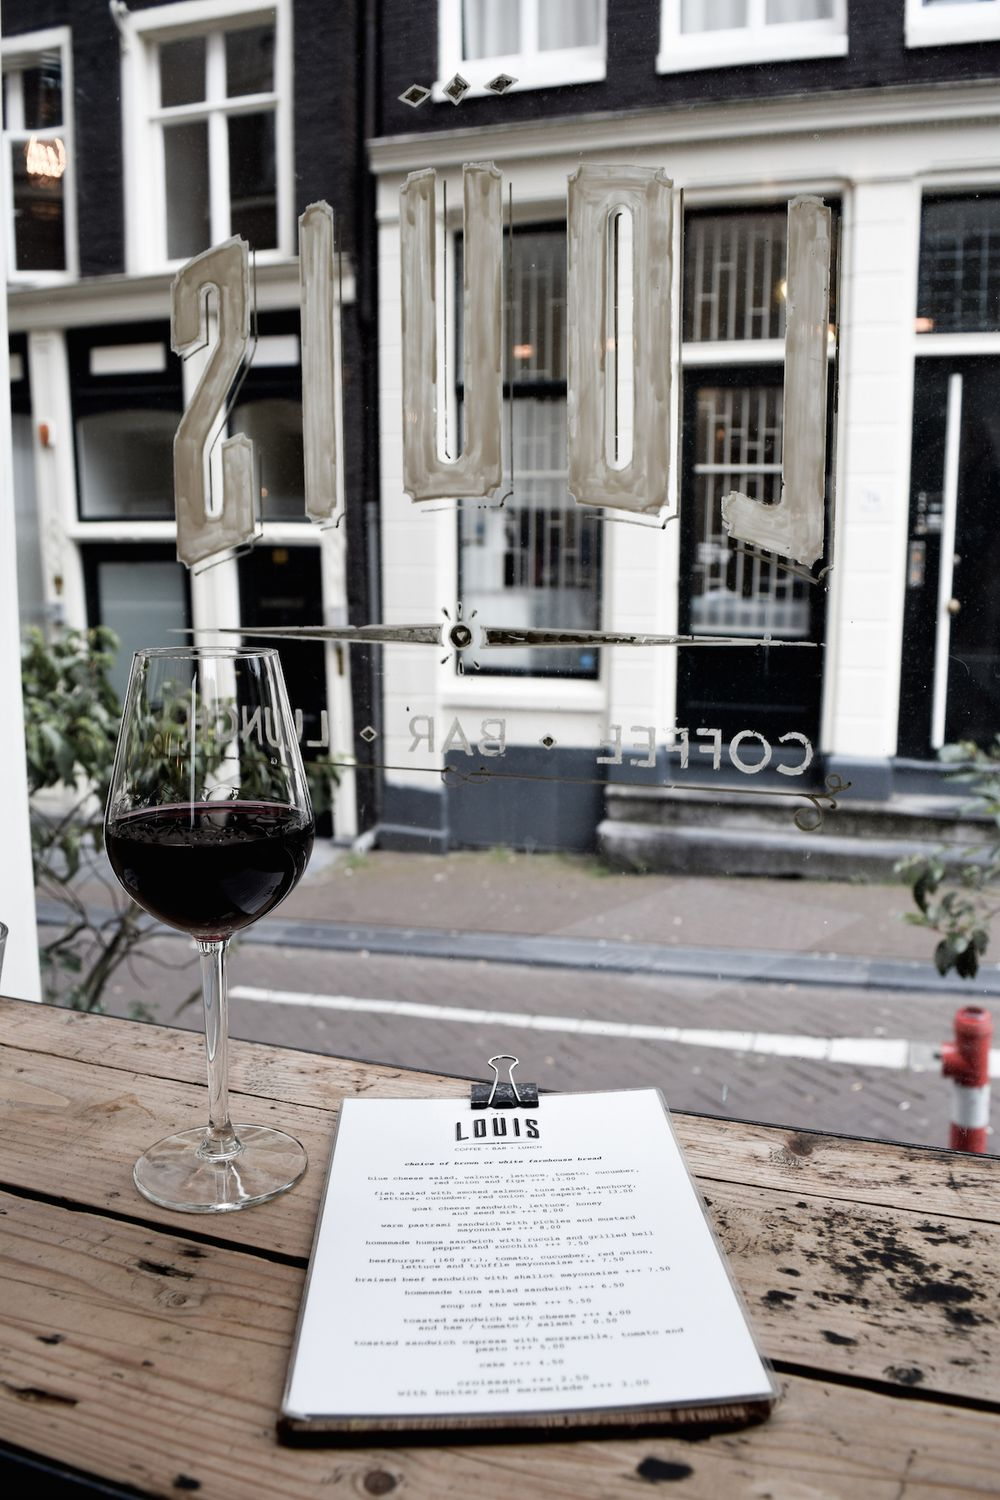 Lunch at Louis Restaurant in Amsterdam